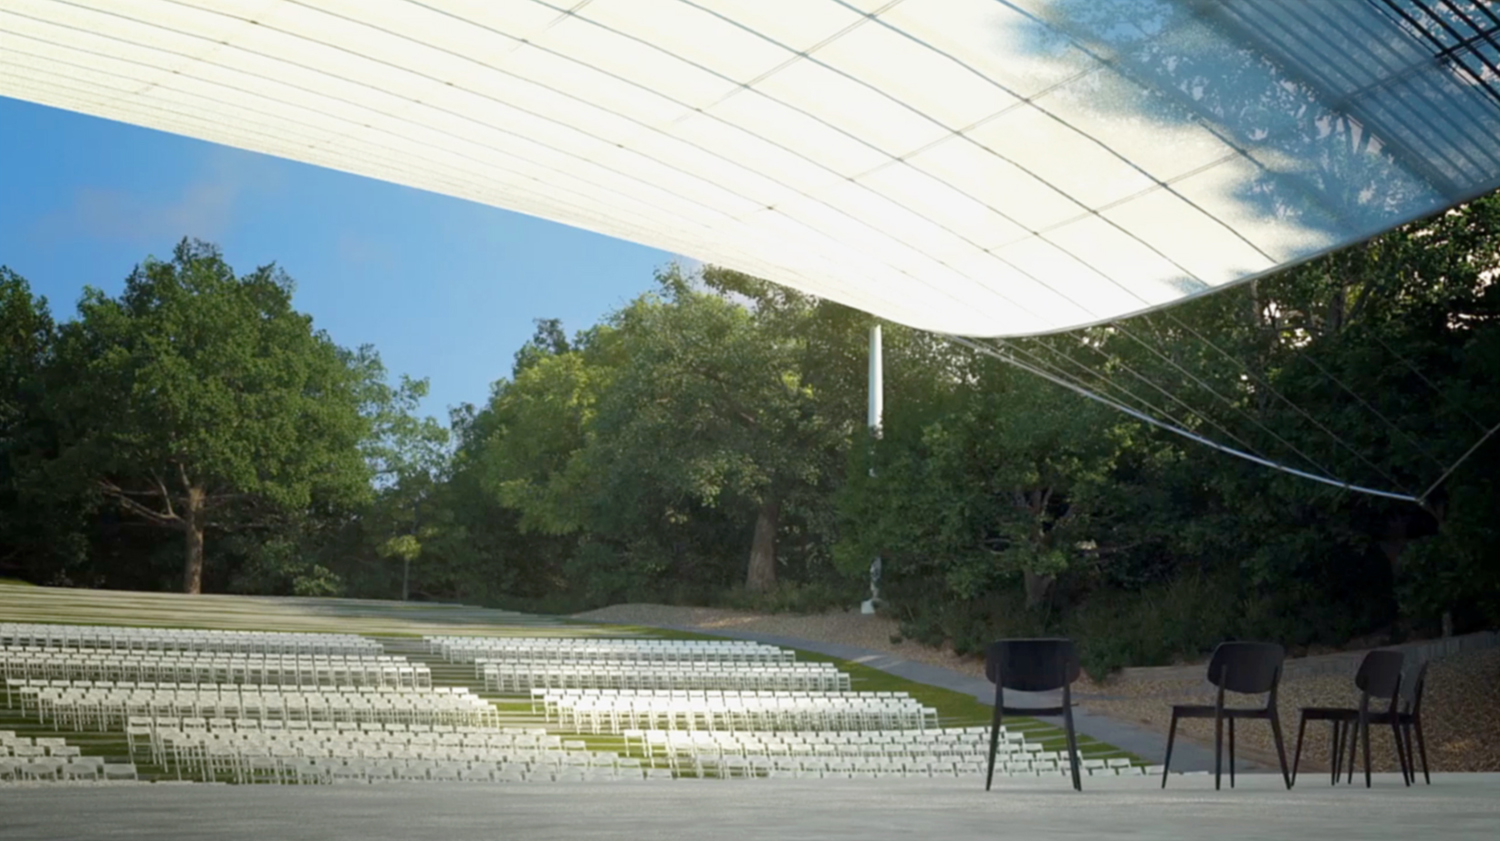 The translucent fabric transmits information about the surrounding landscape while shading the amphitheater. Brooklyn Digital Foundry